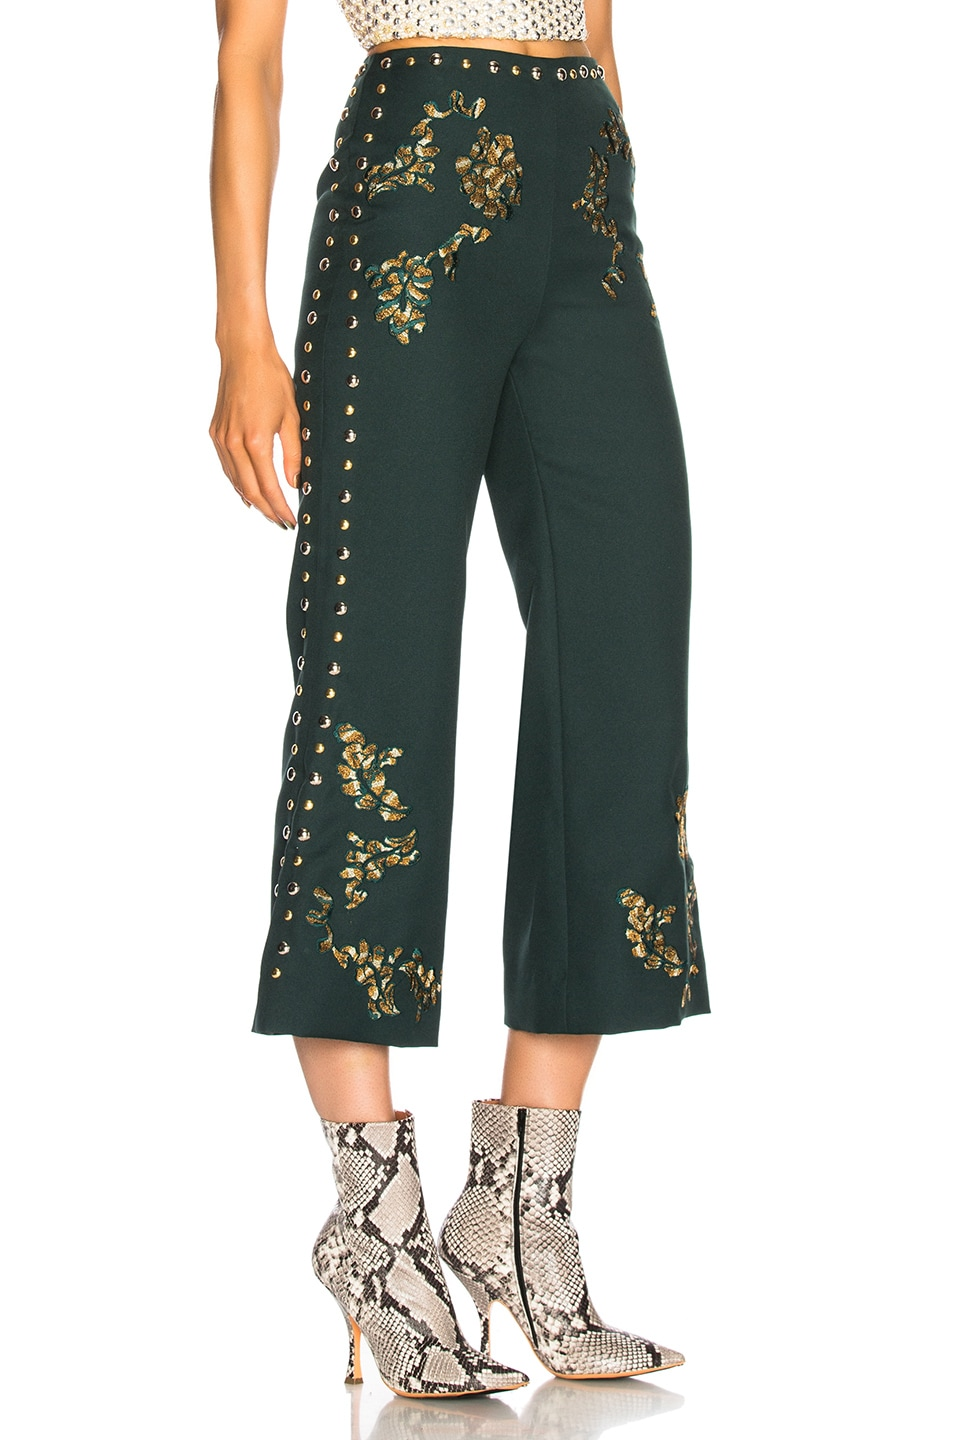 Image 2 of Rodarte Floral Metallic Embroidery & Studded Detail Pants in Dark Green & Gold